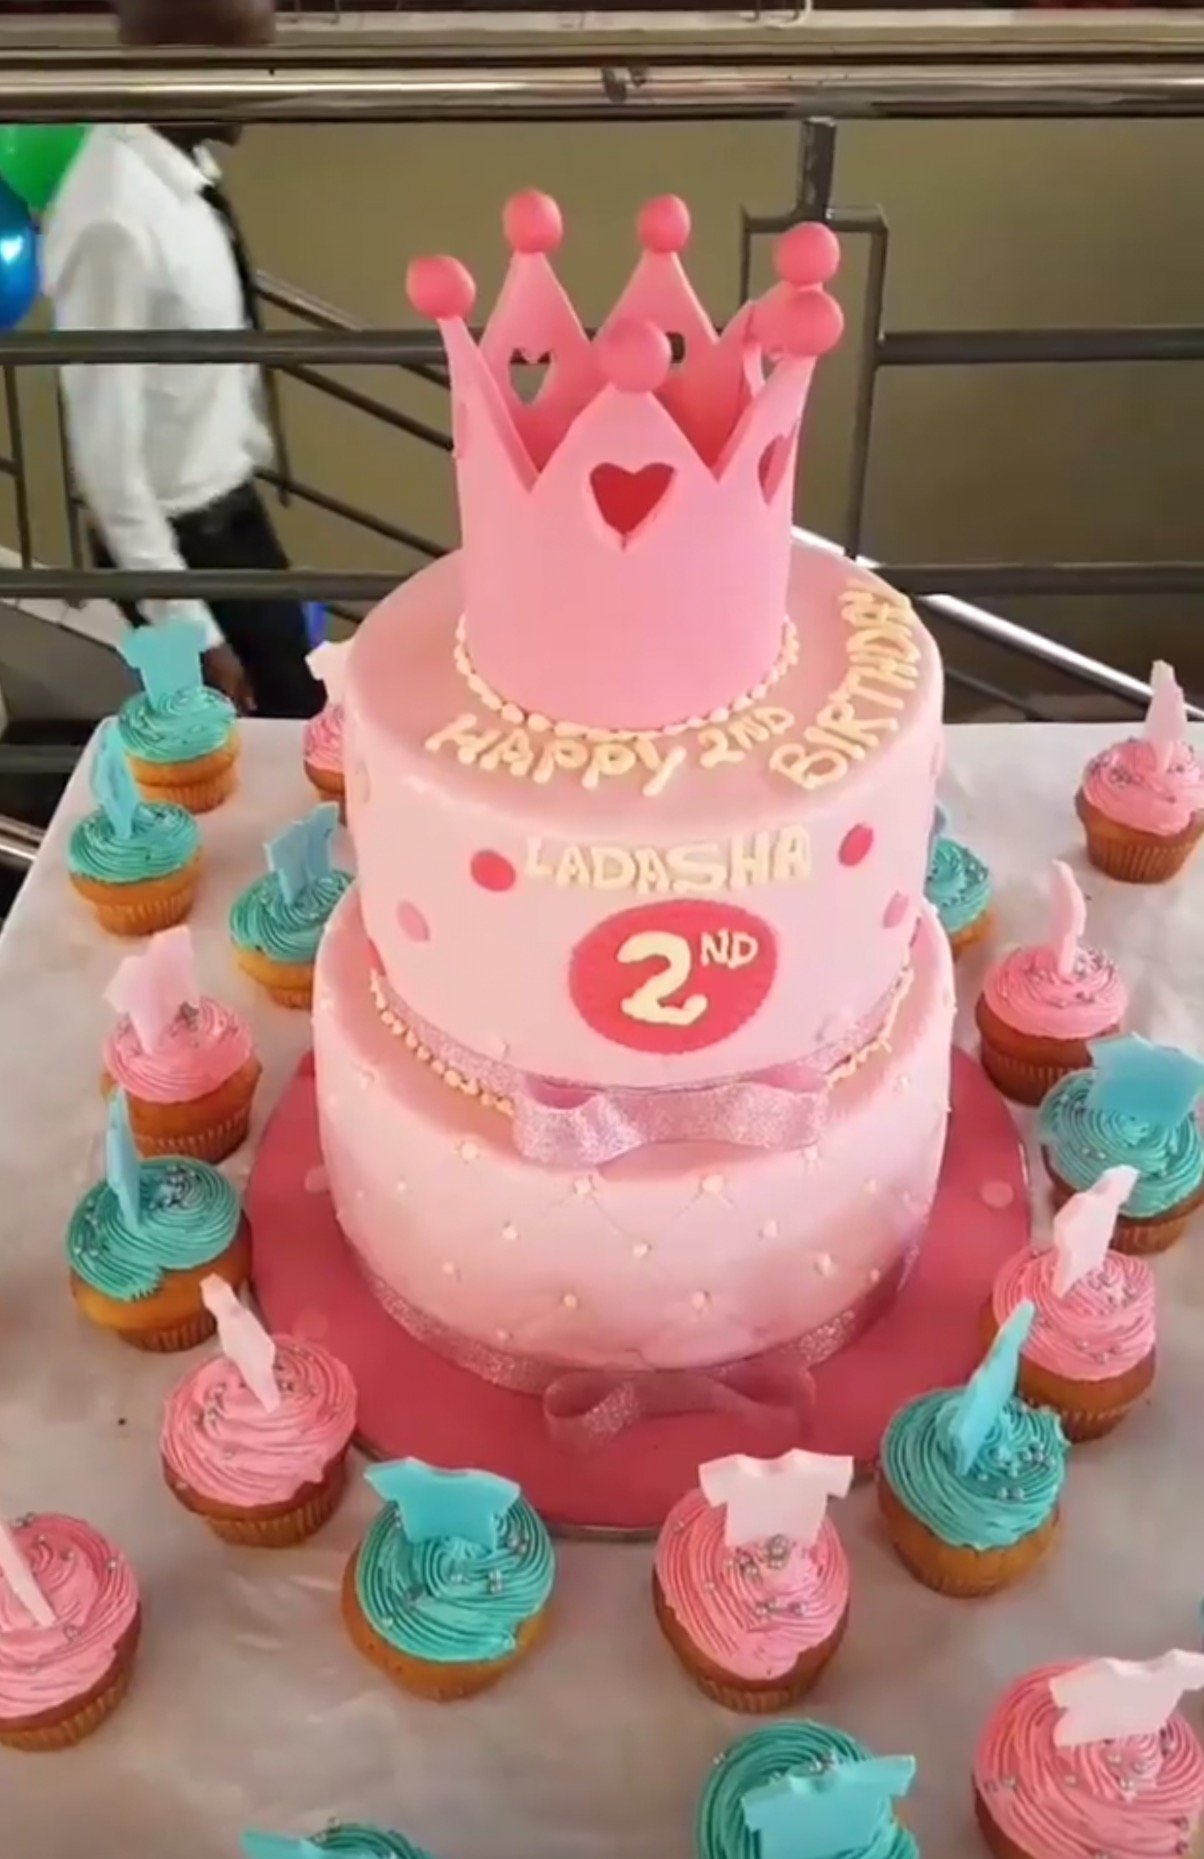 From A New Photo Making Rounds On Social Media Size 8 And Her Husband Are Said To Have Bought Huge Decorated Cake Mark Their Babys 2nd Birthday